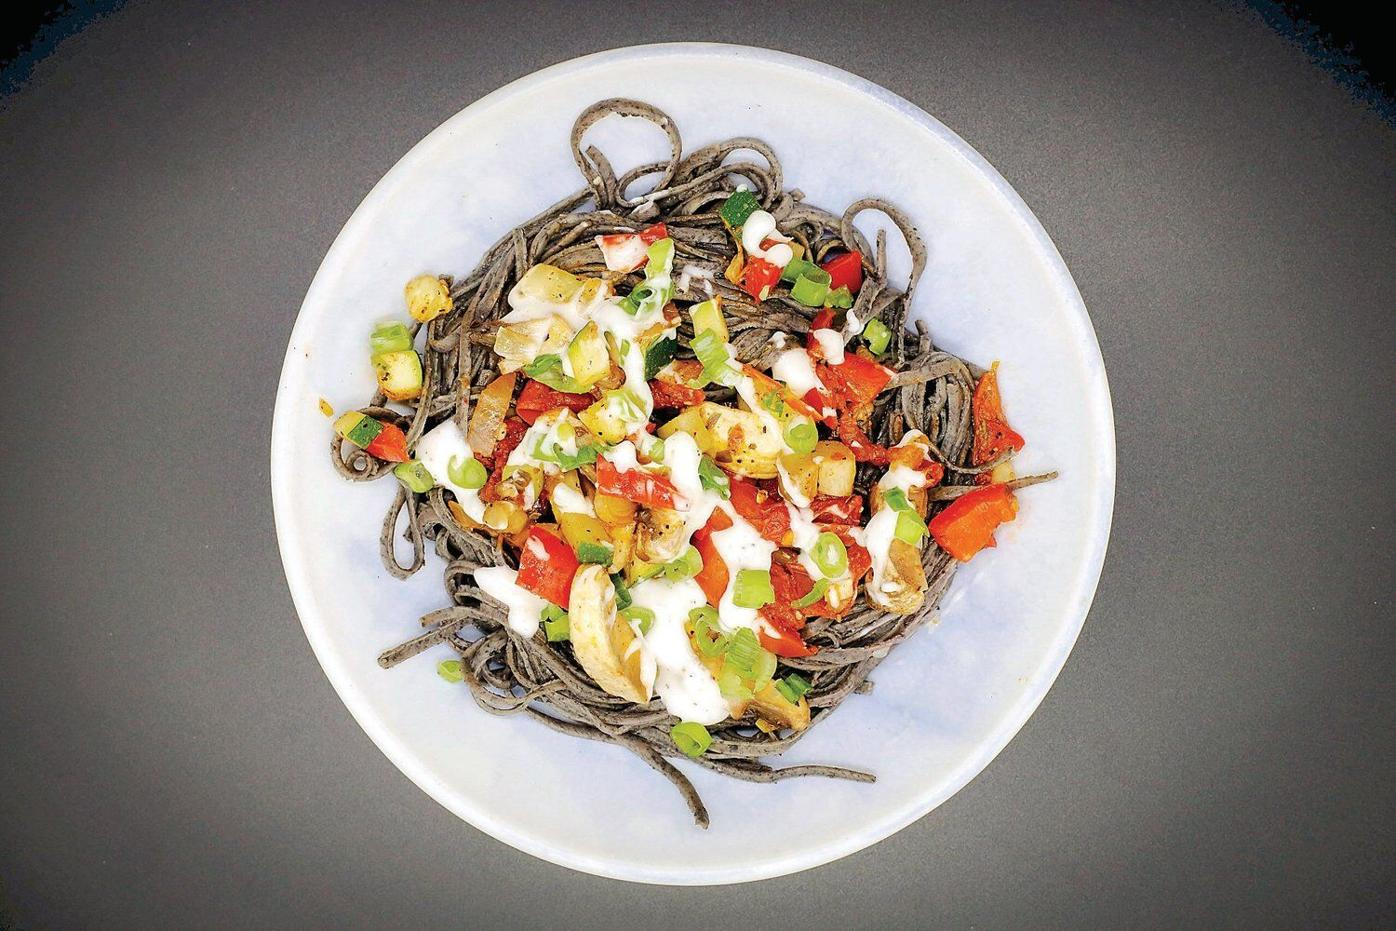 Crossover to the dark side with black bean pasta